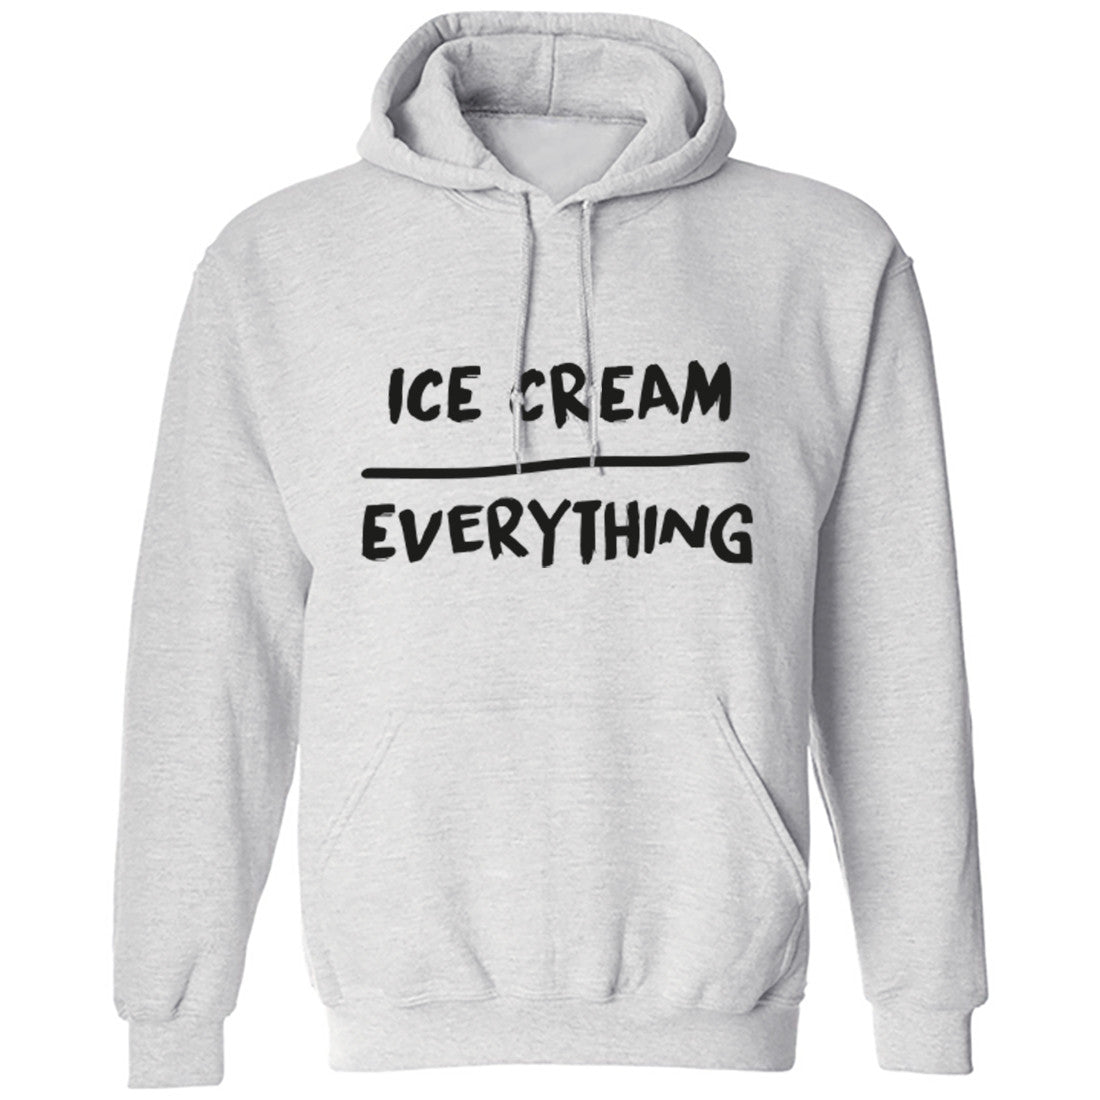 Ice Cream Over Everything Hoodie K0122 - Illustrated Identity Ltd.